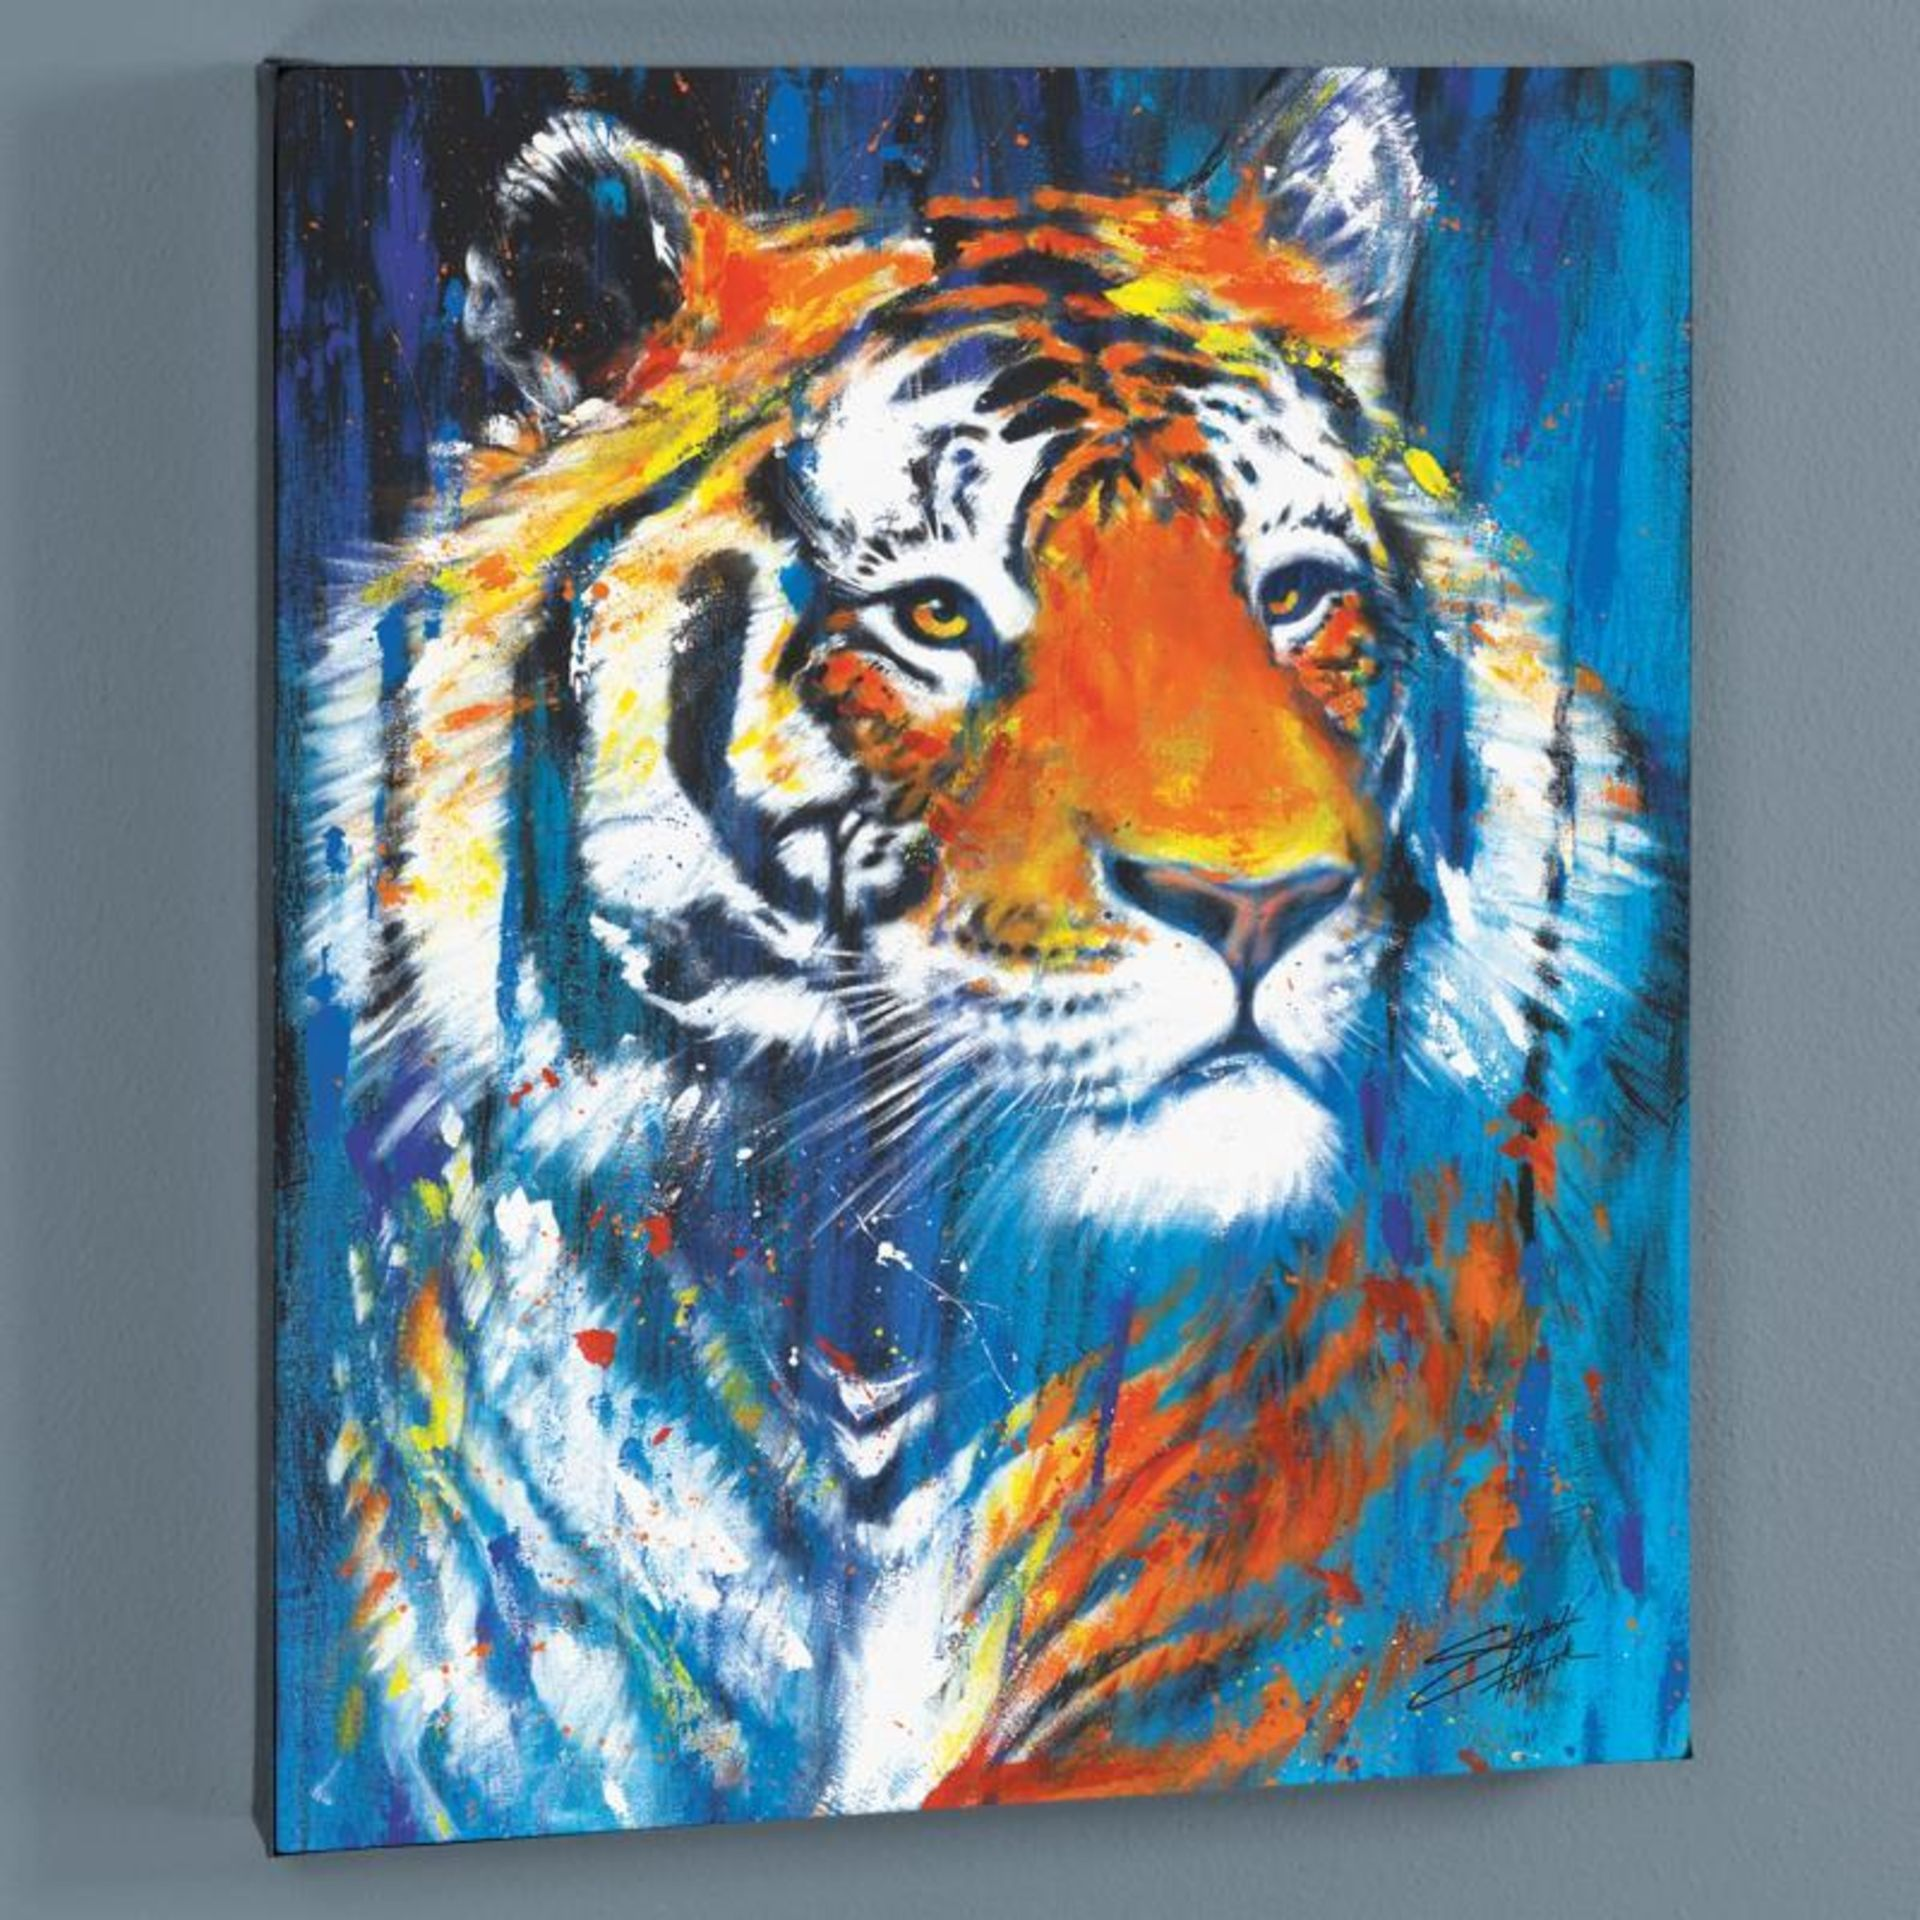 """Nala"" Limited Edition Giclee on Canvas by Stephen Fishwick, Numbered and Signed - Image 3 of 3"